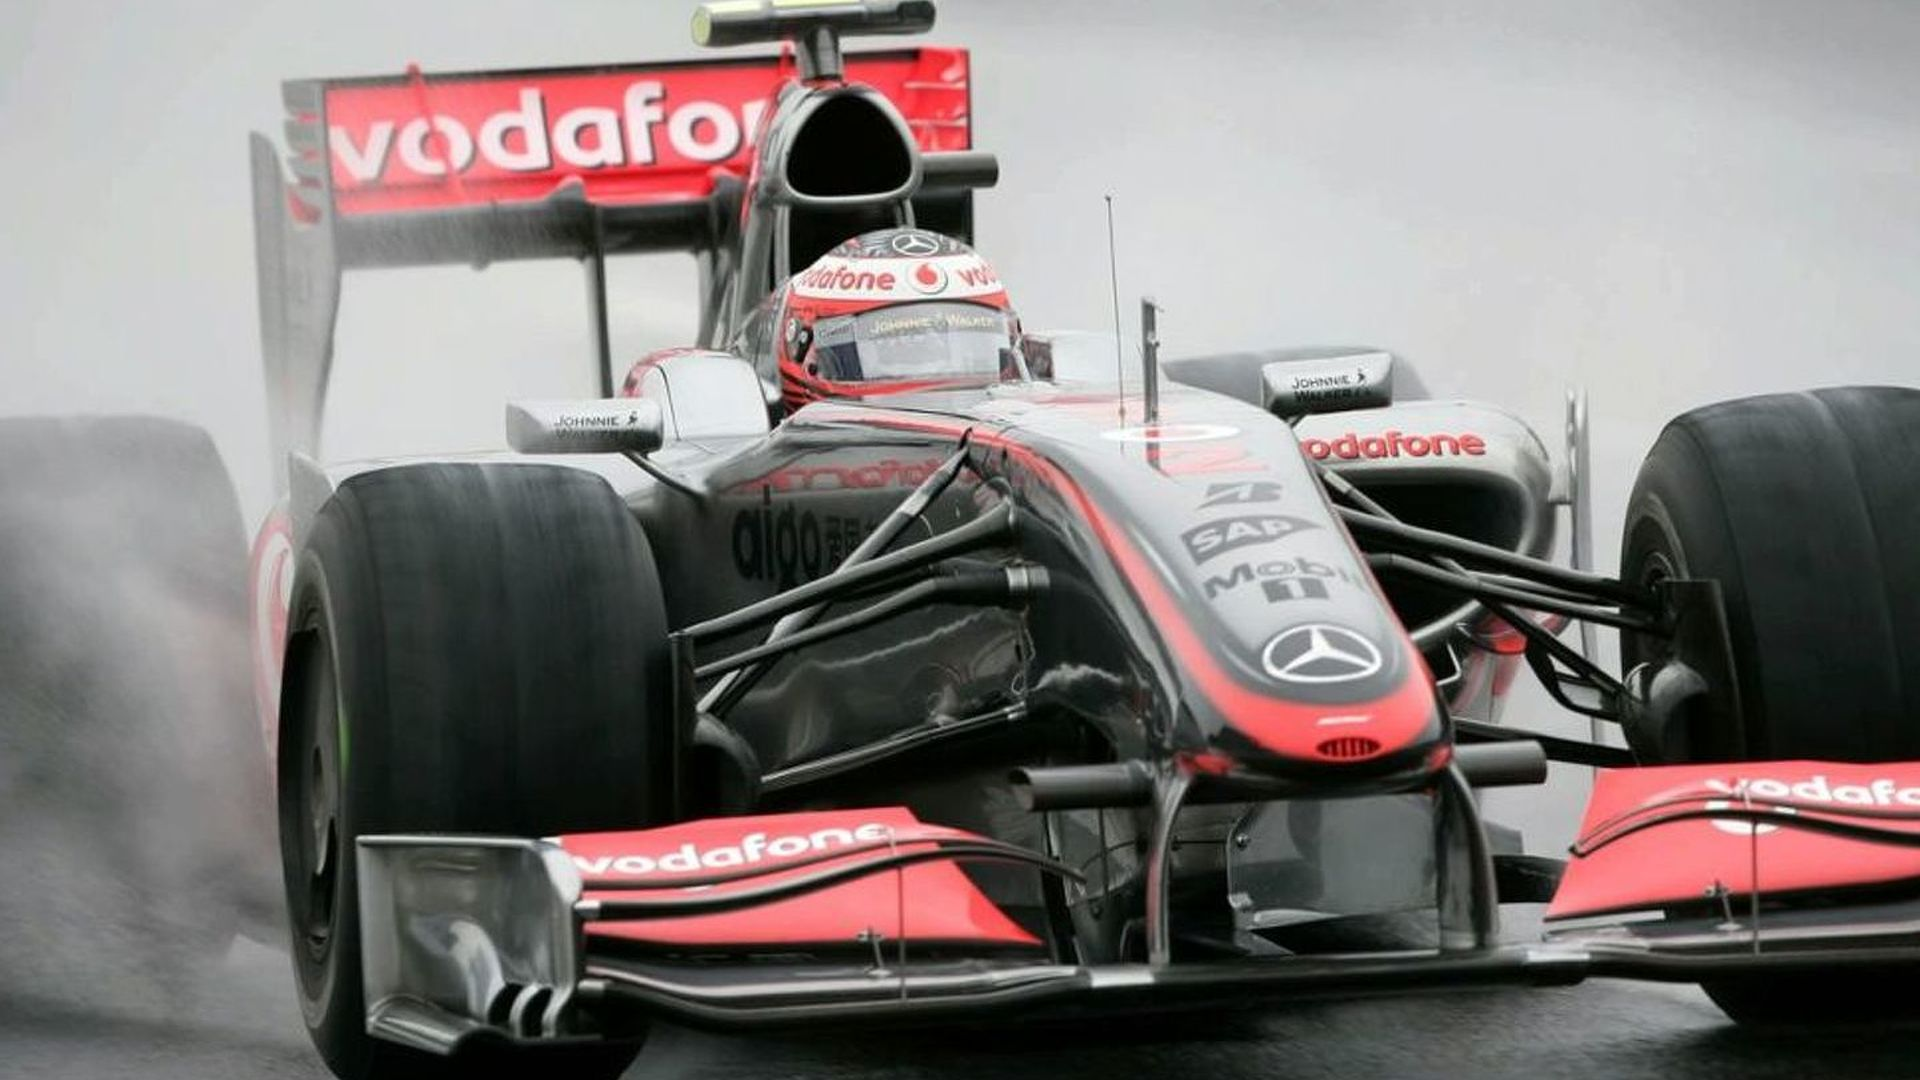 Suzuka wet for morning practice session